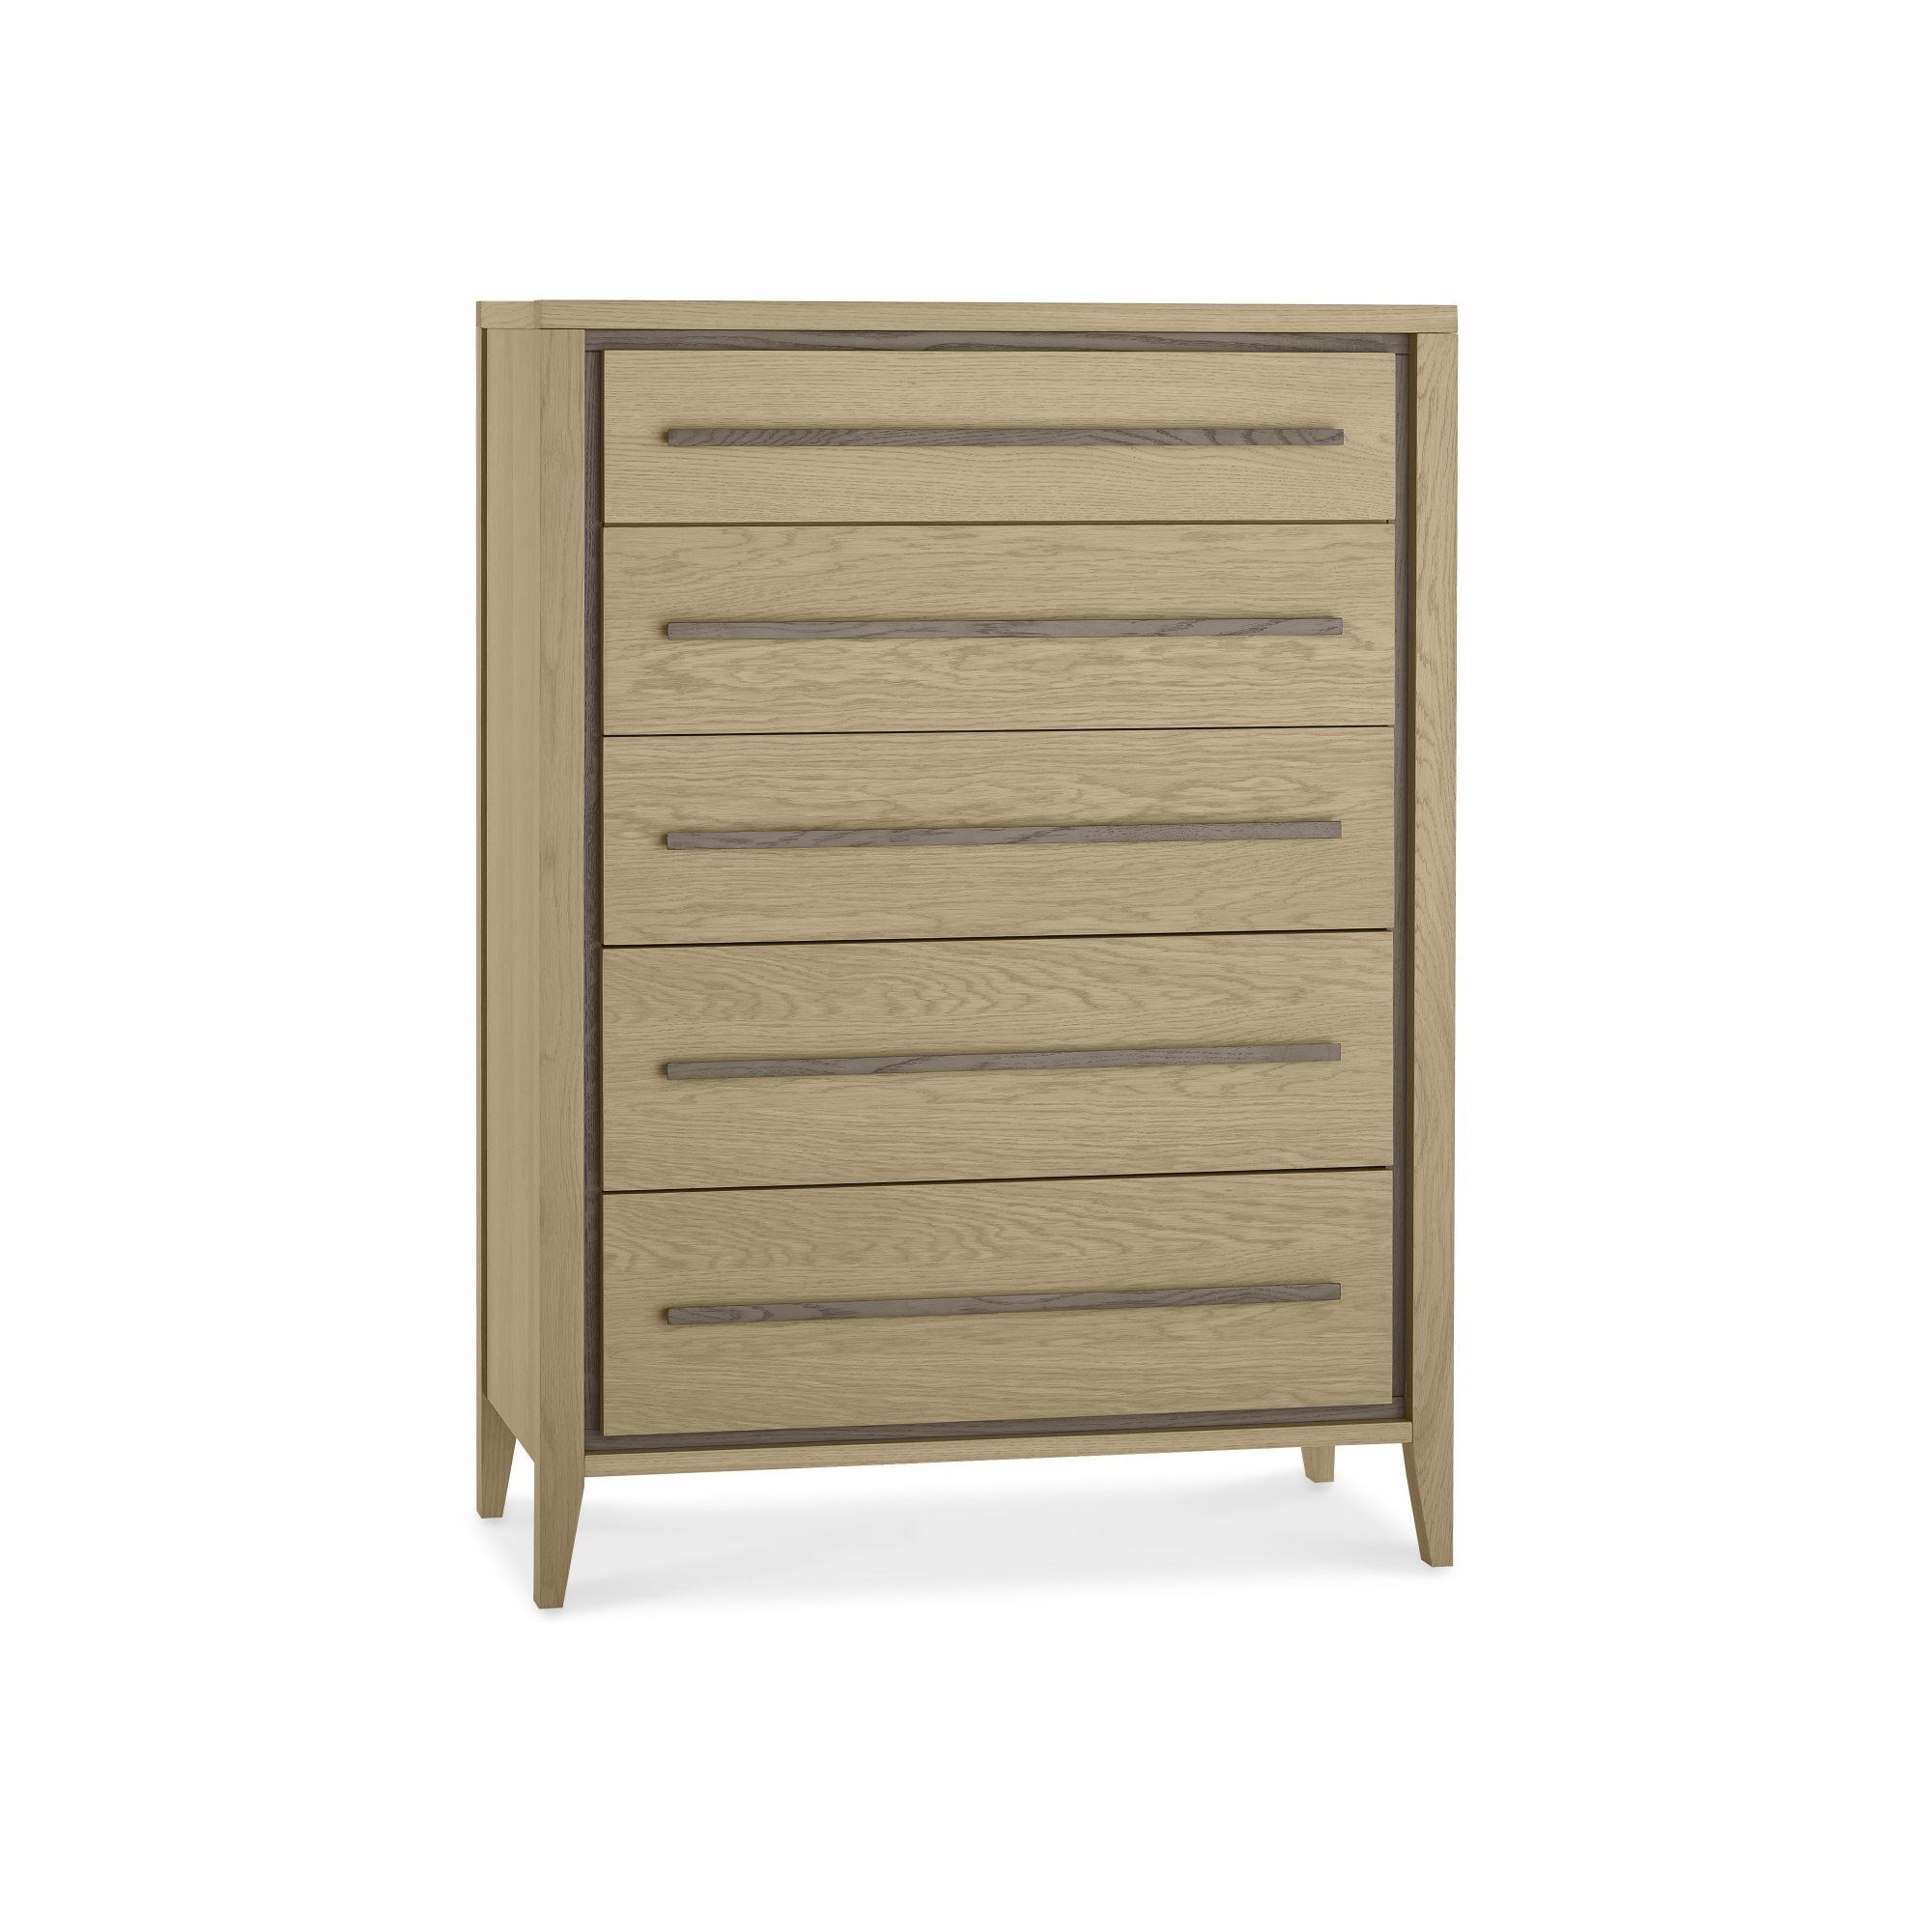 CARELL TALL CHEST - L85cm x D45cm x H119cm